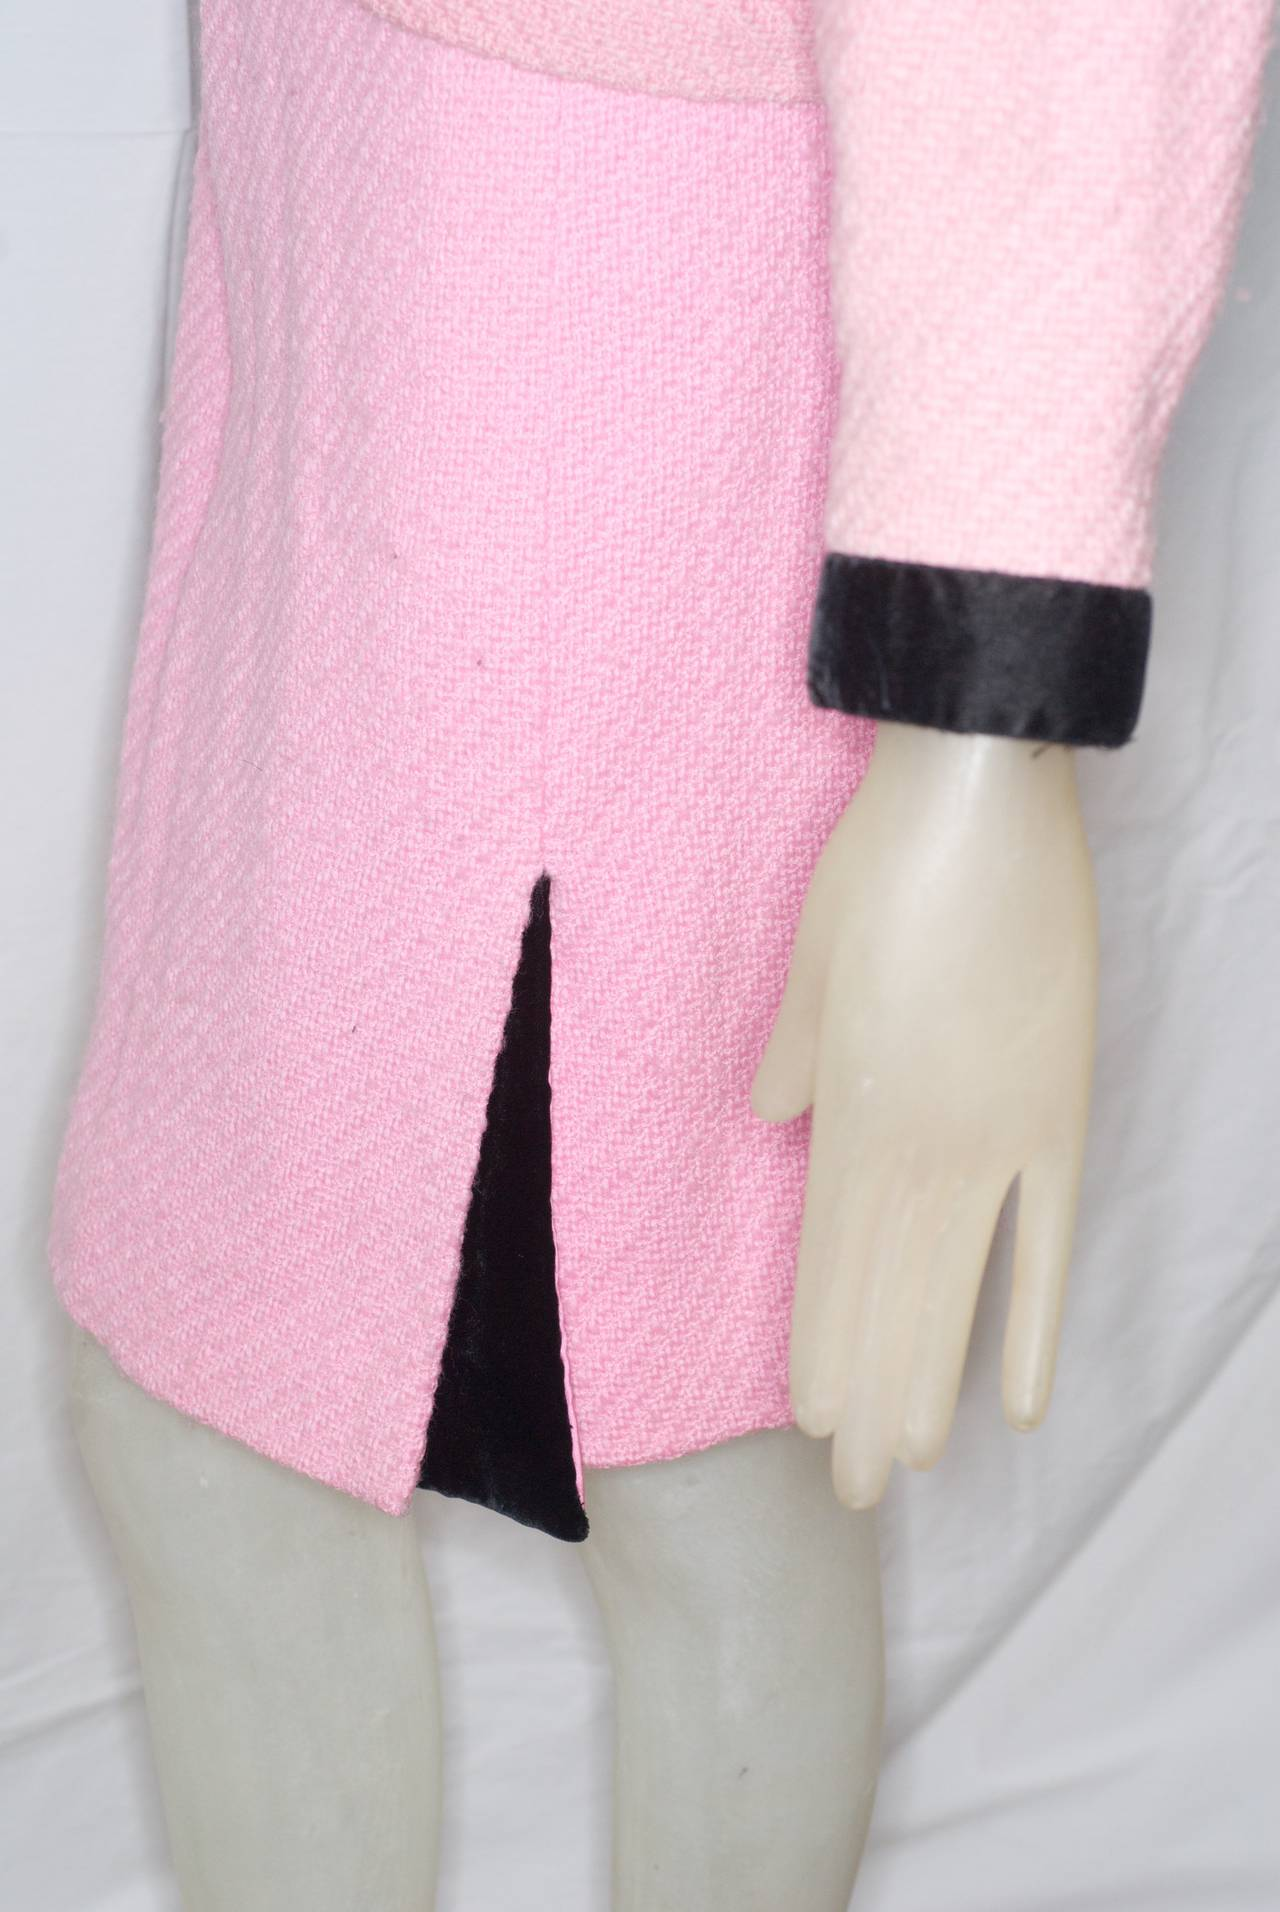 Chanel haute couture pink jacket and skirt at 1stdibs for Chanel haute couture price range